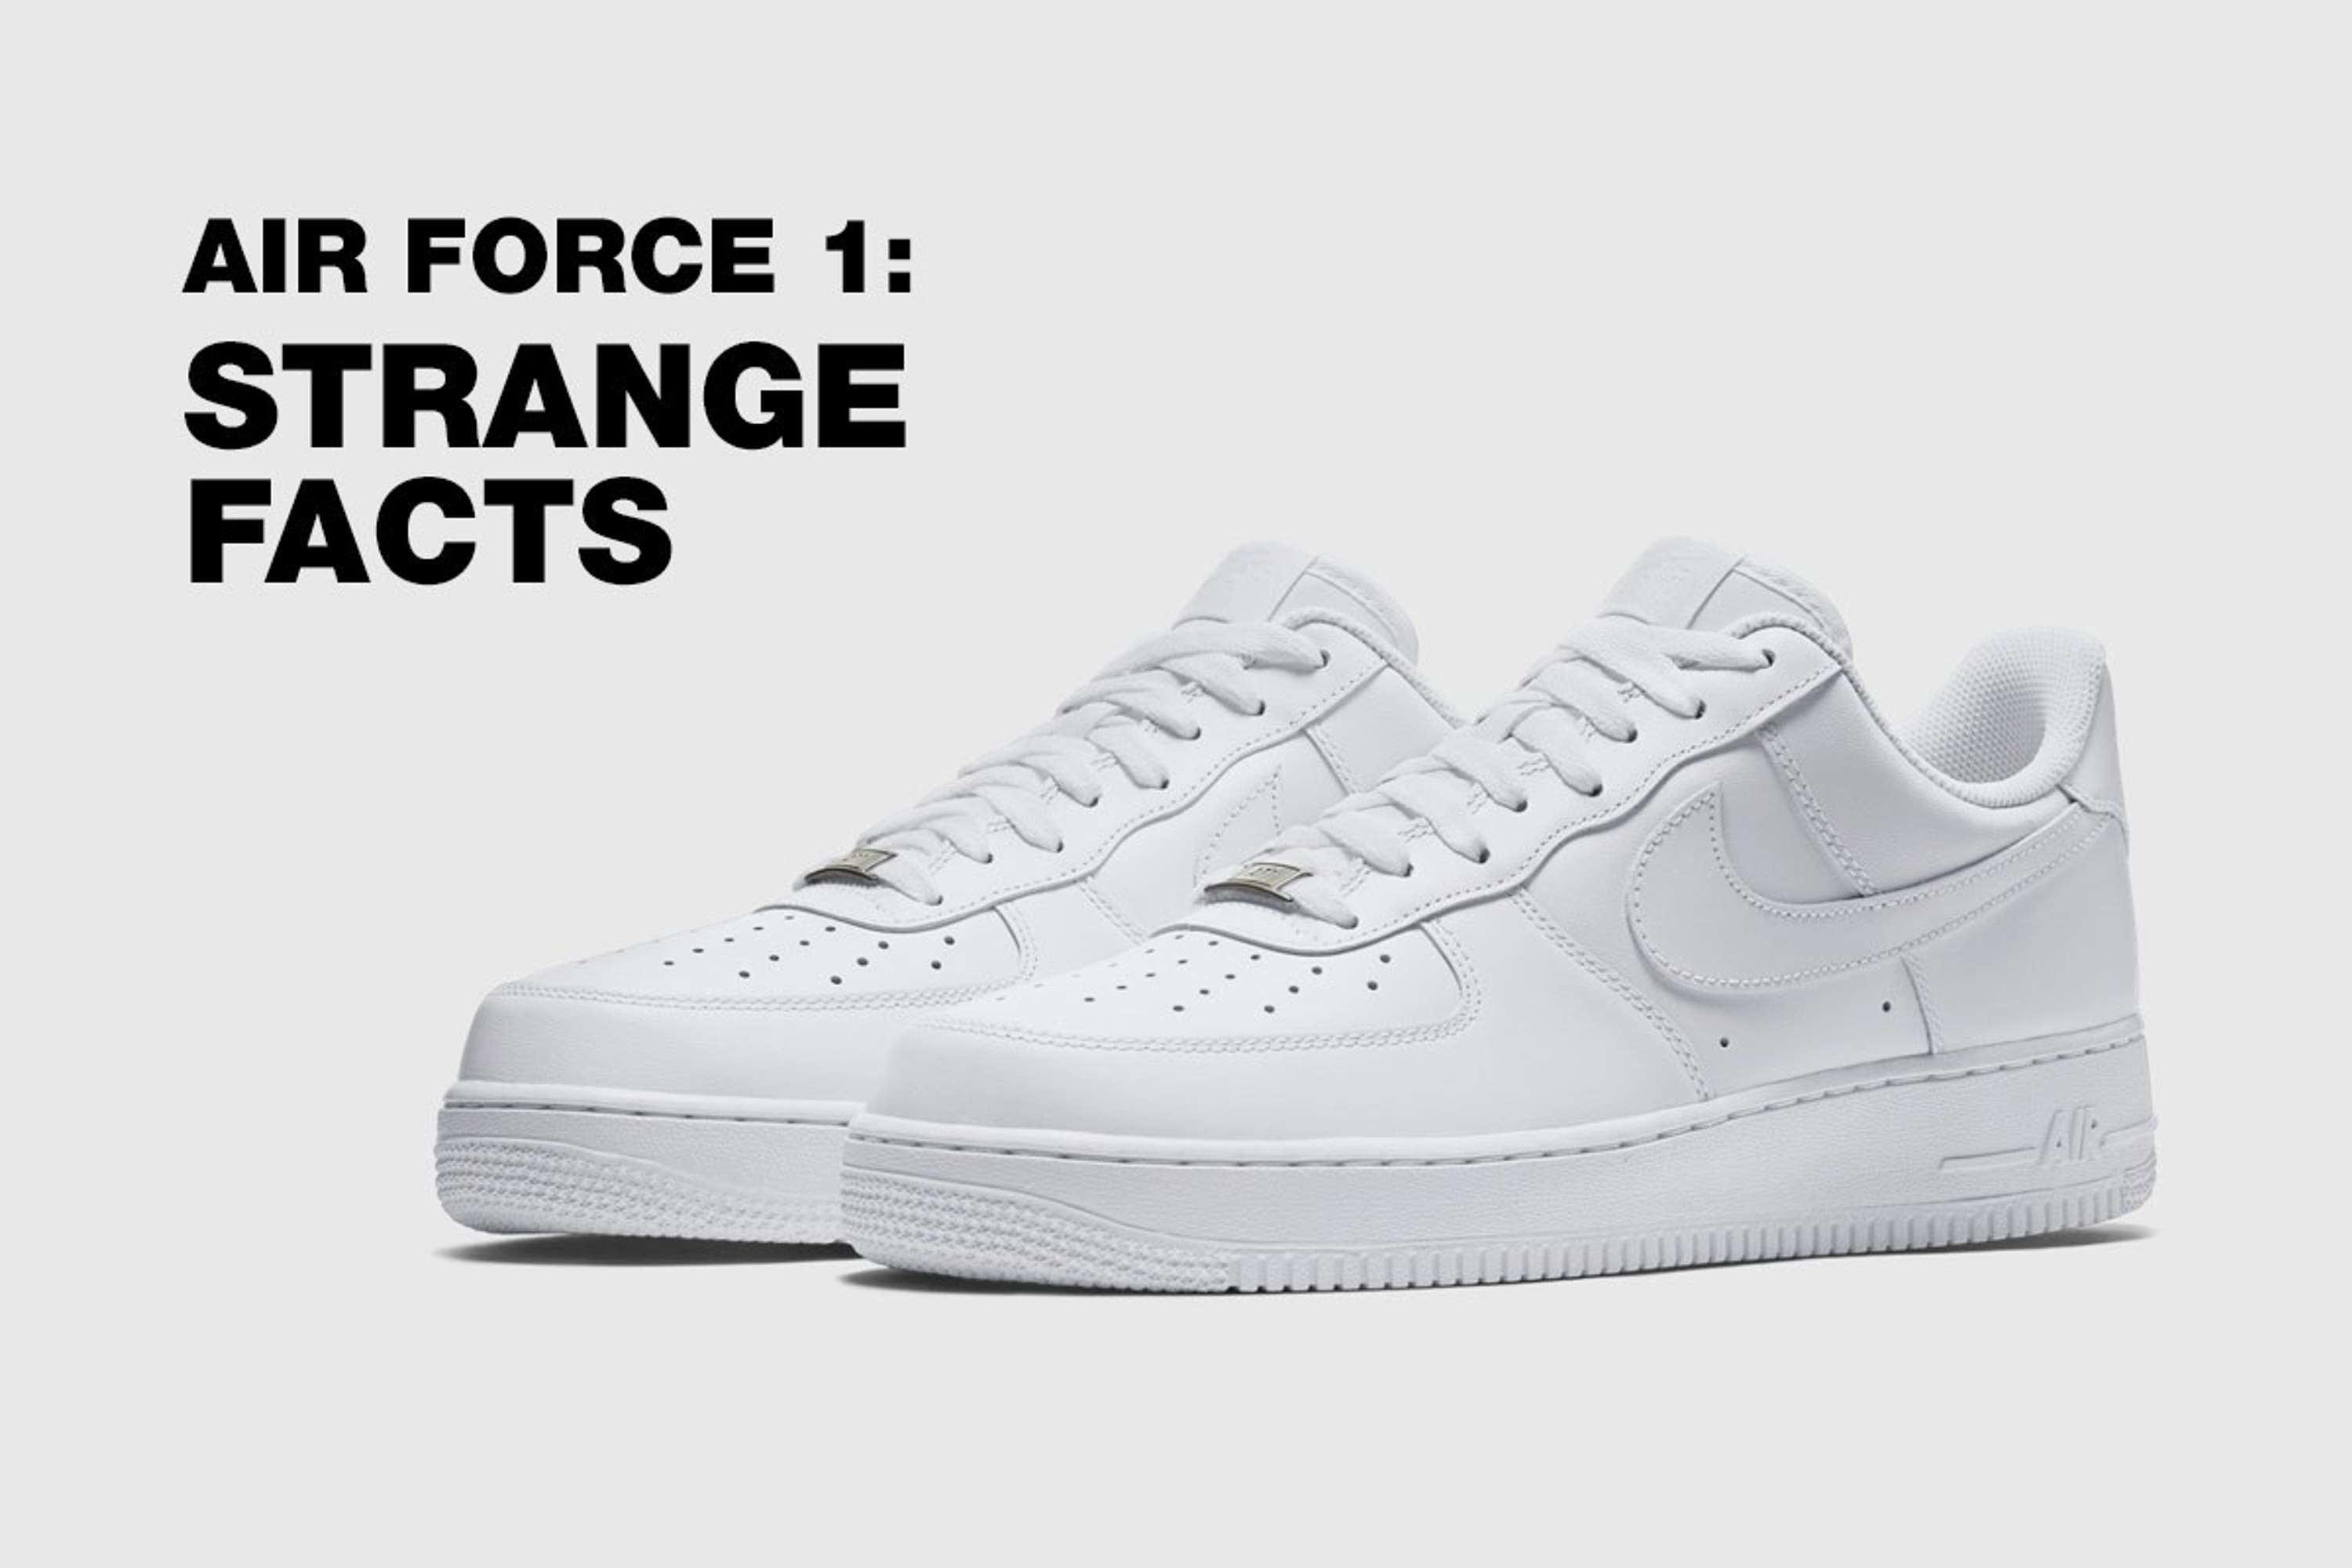 Nike Not You Know the About 15 Air Facts Force May Dots 1The E2DH9YWI